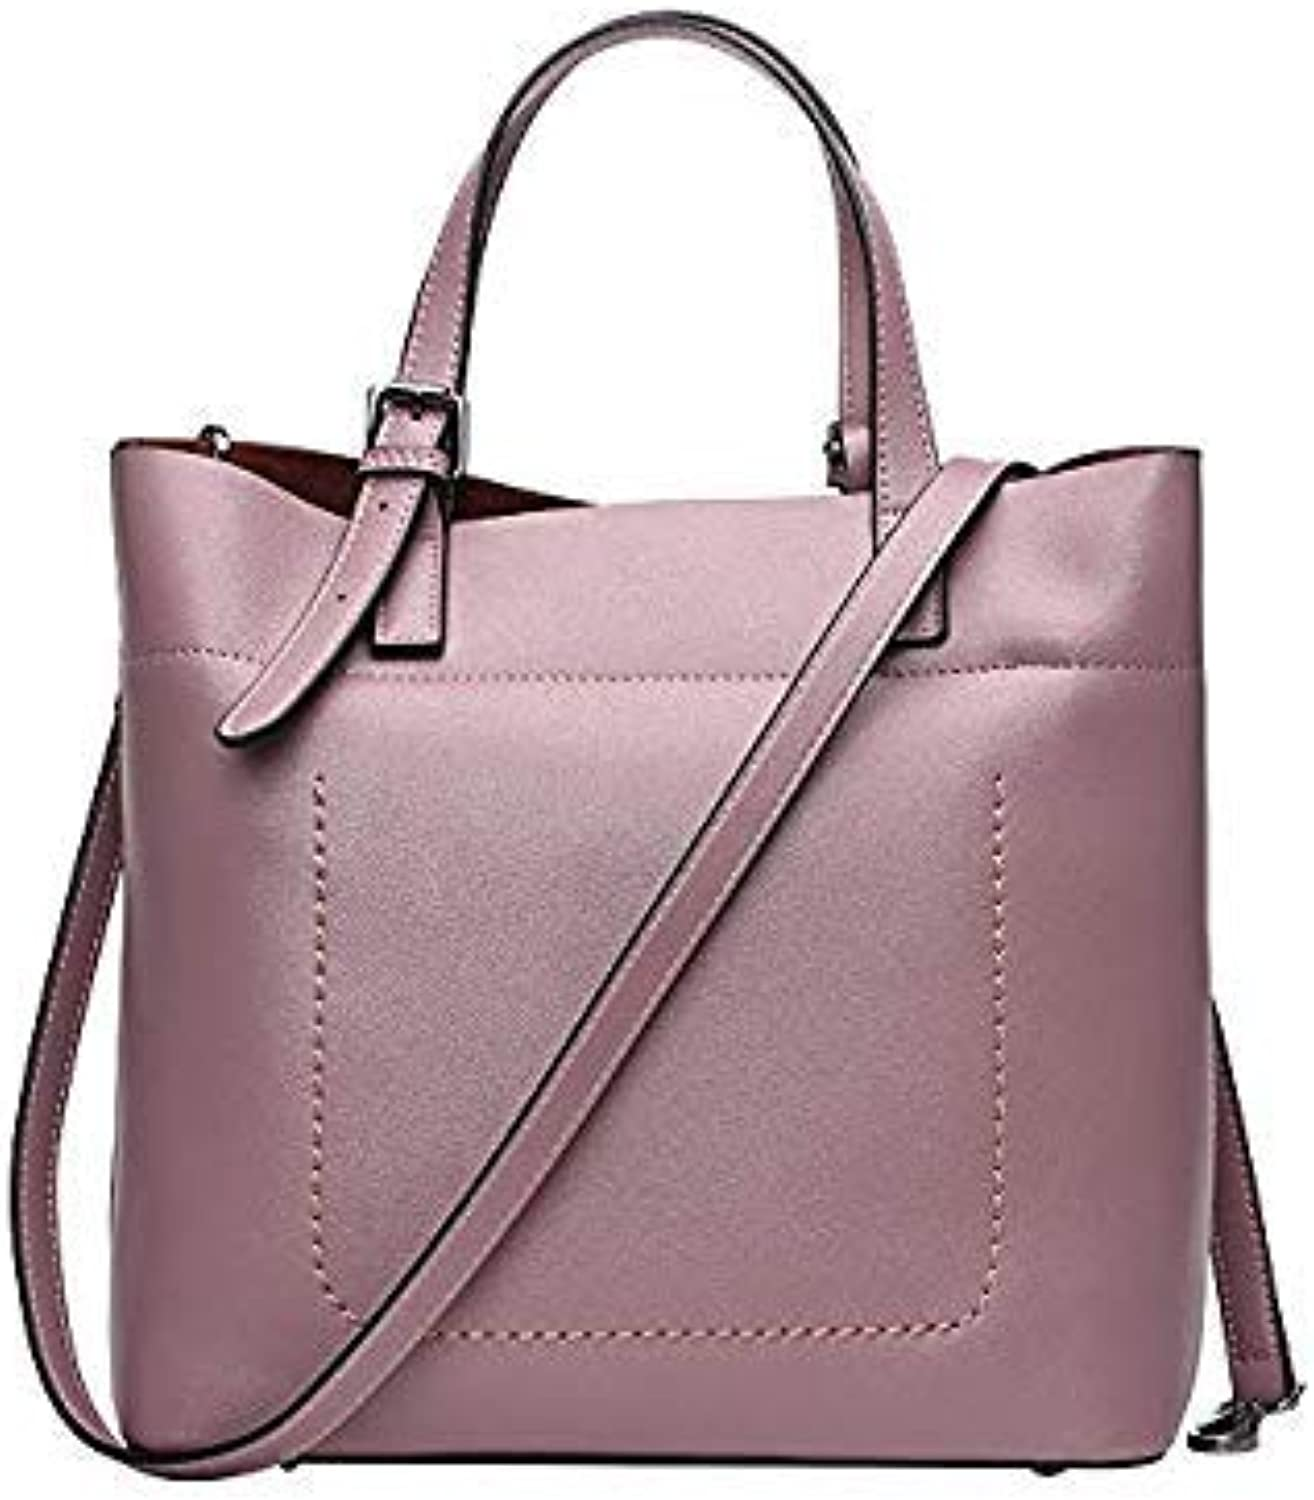 Bloomerang Vintage Women Shoulder Bag Female Casual Totes for Daily Shopping AllPurpose High Quality Genuine Leather Handbag color Purple